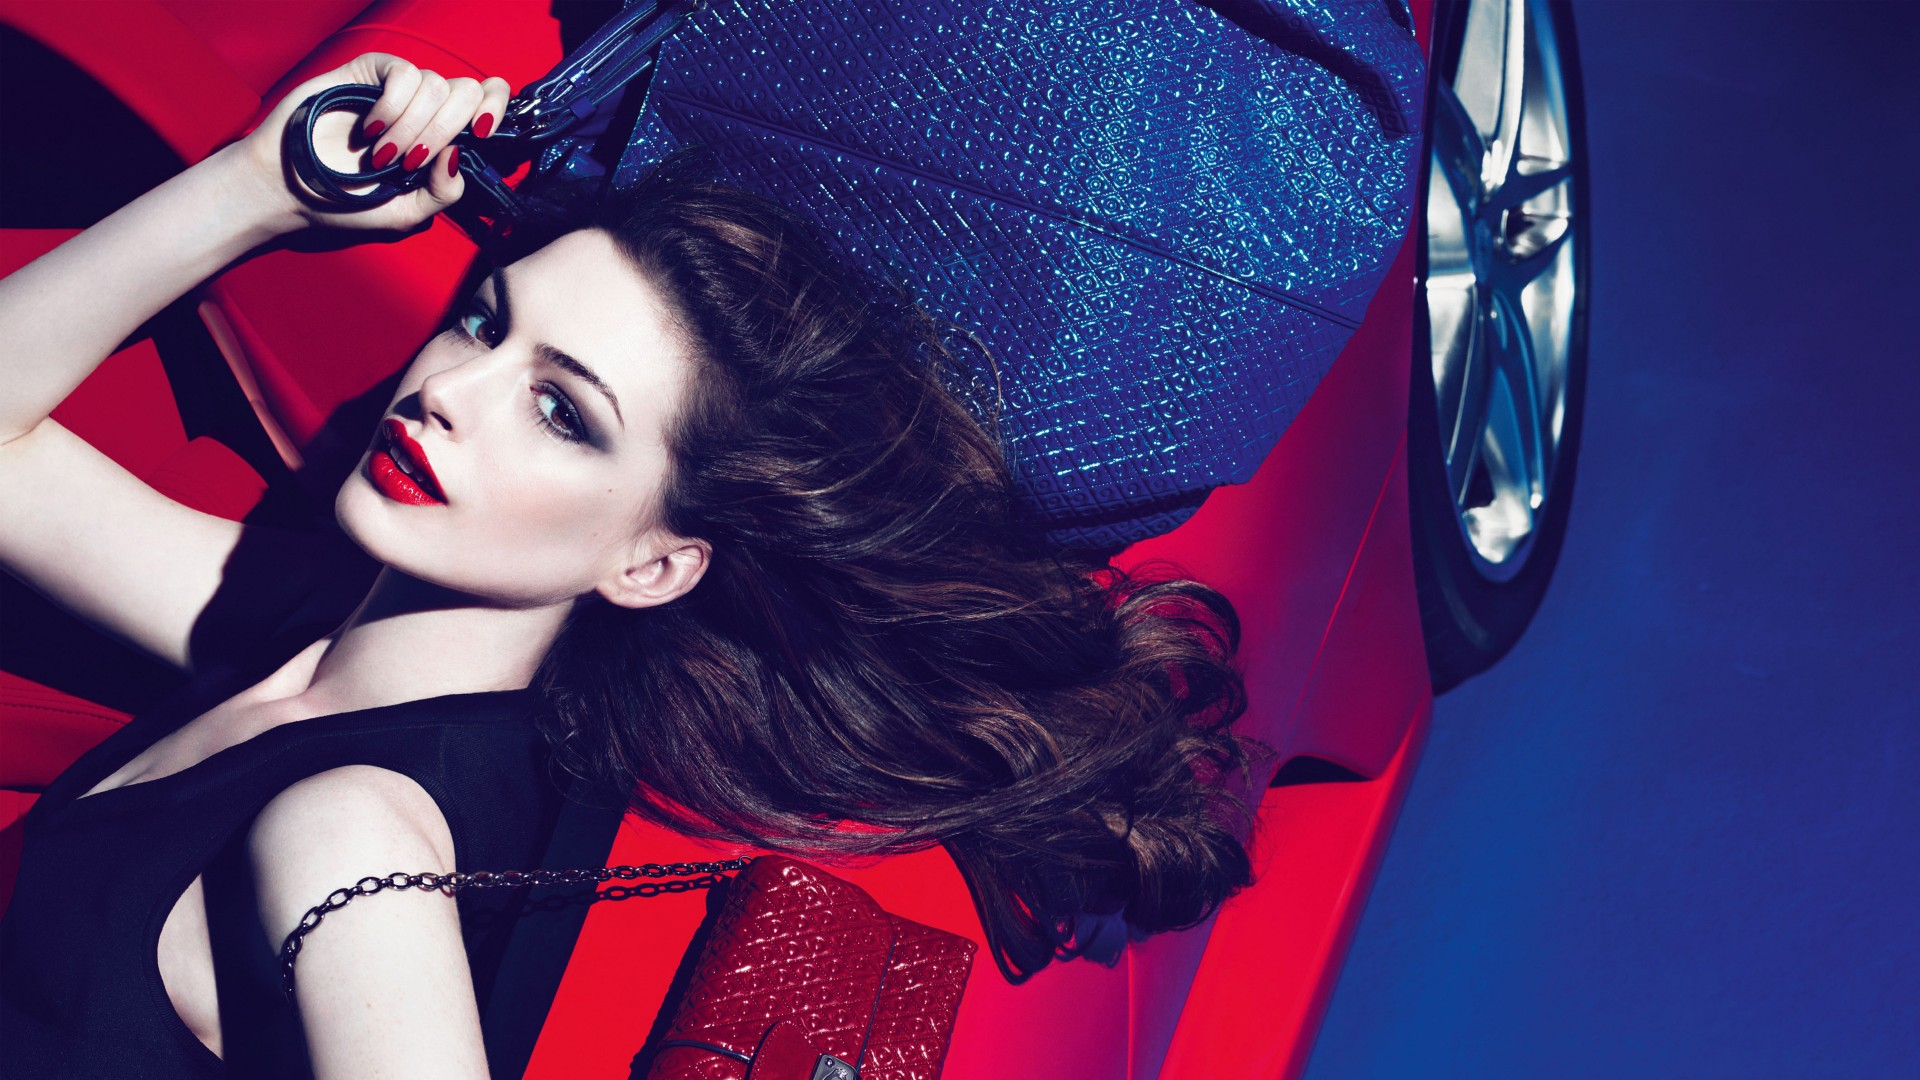 3d Wallpaper For Android Phone Download Anne Hathaway 2016 Wallpapers Hd Wallpapers Id 17519